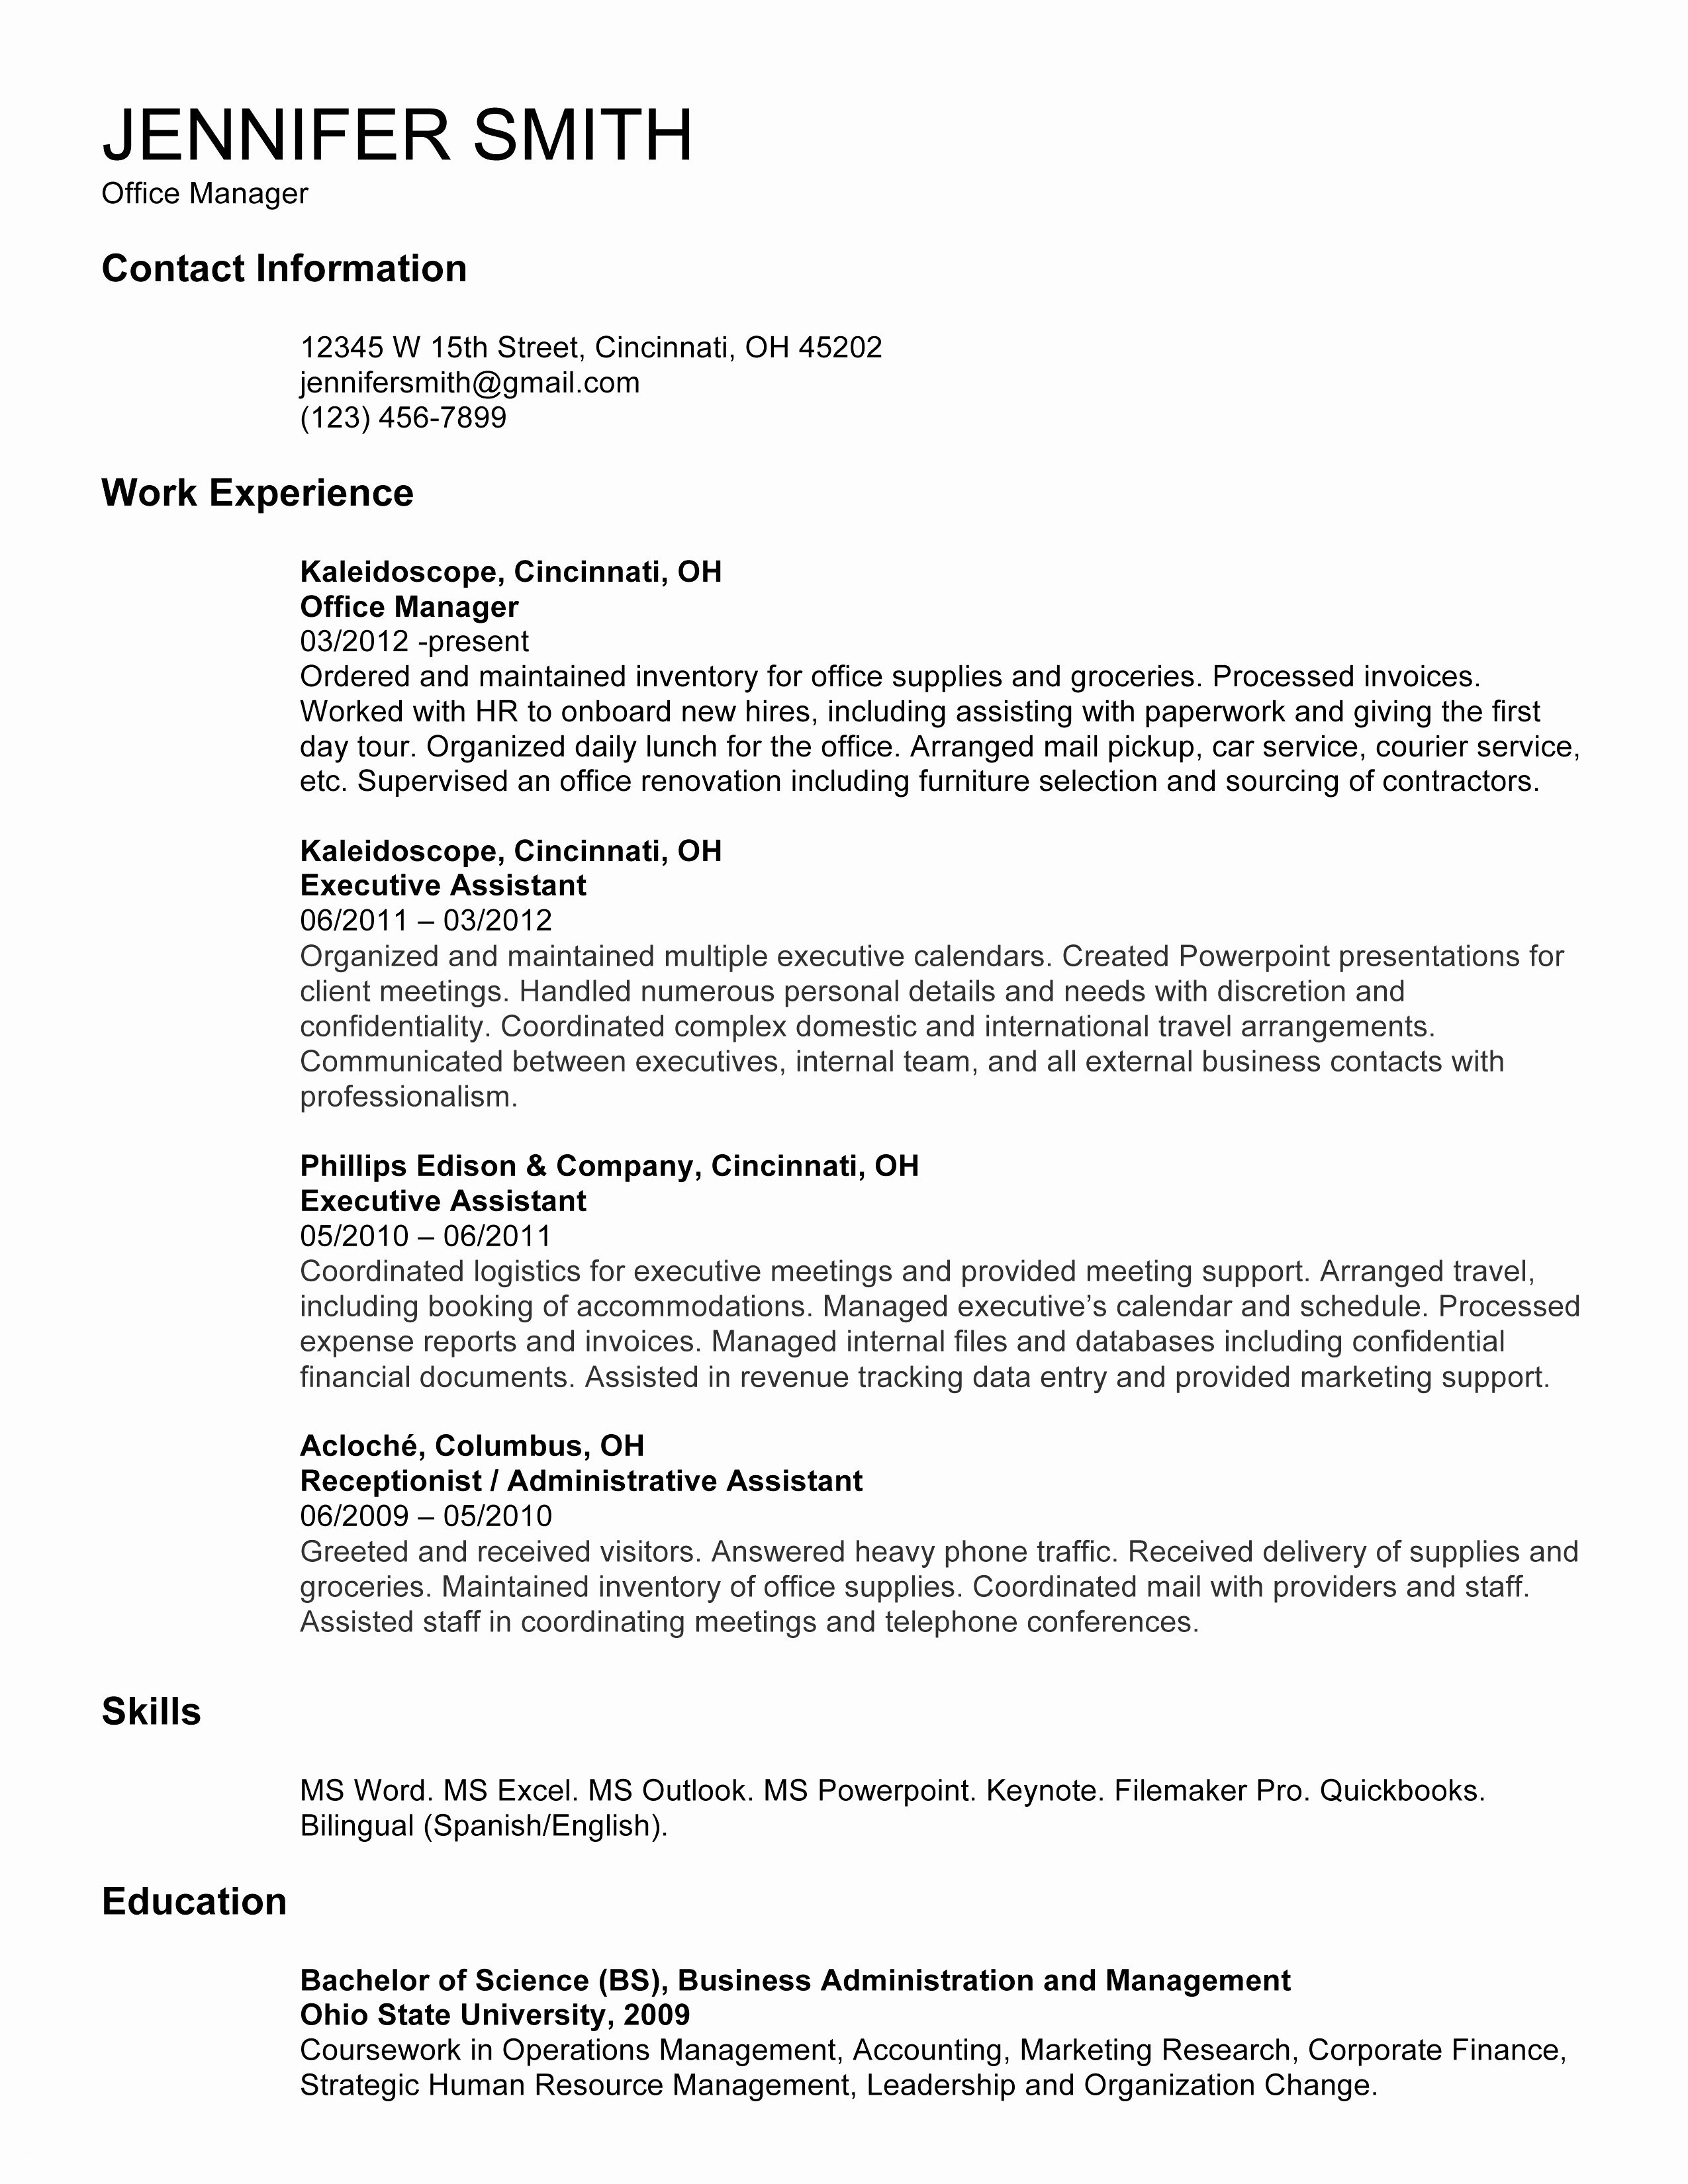 Office Clerk Job Description for Resume - How to Make A Resume for A Receptionist Job Valid Fresh Reception